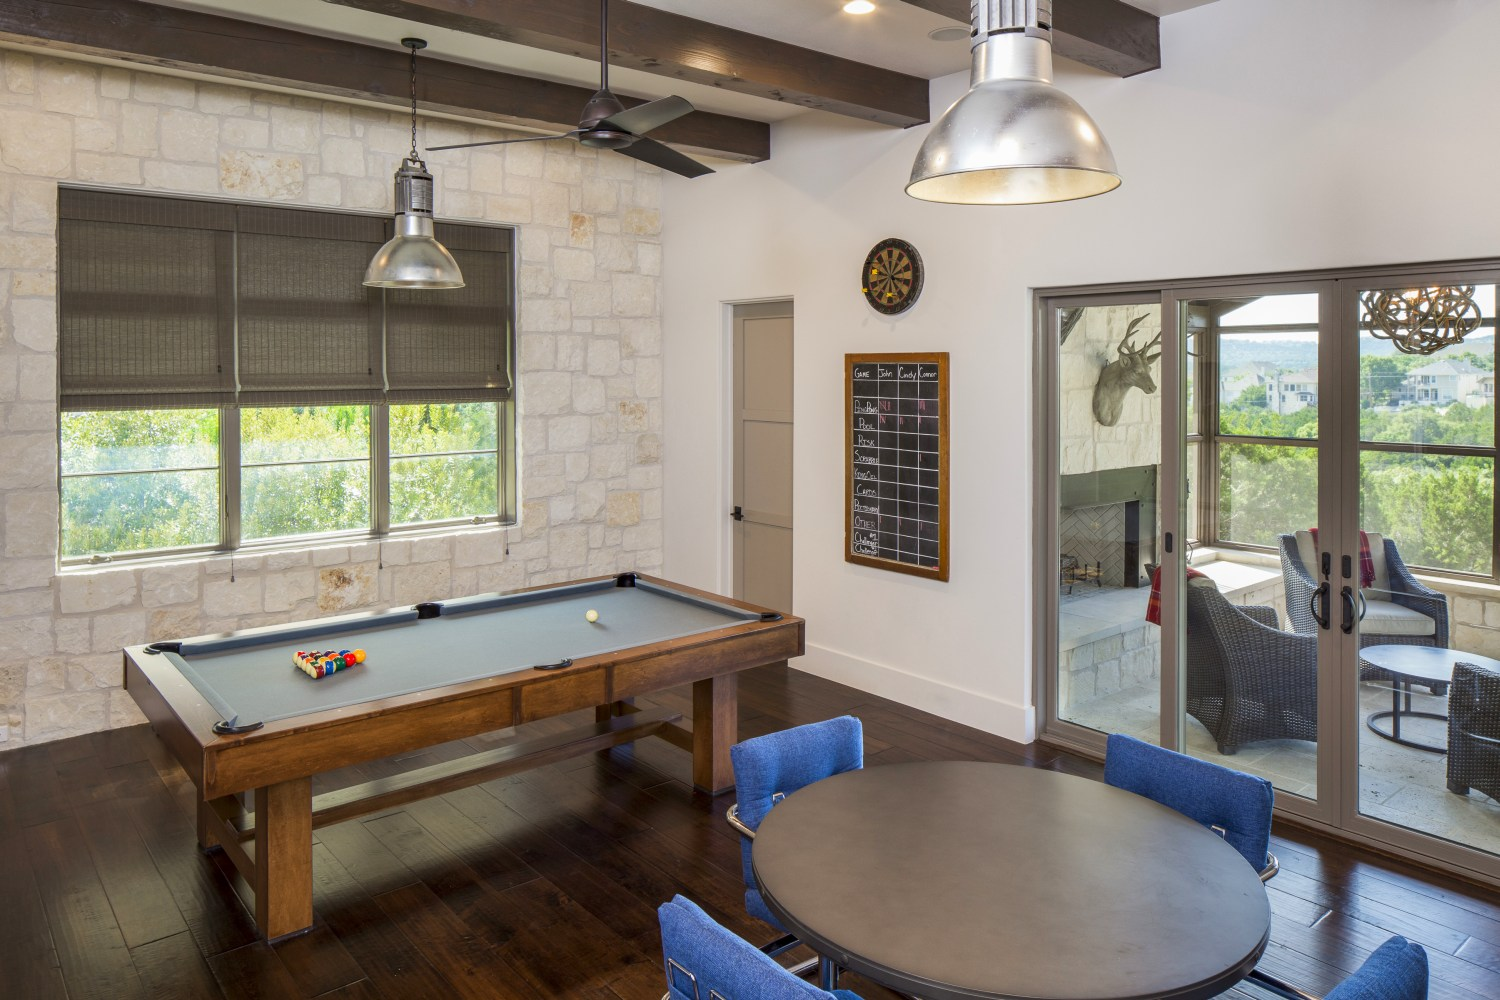 Architecture-Home-Contemporary-European-Farmhouse-06-Game-Room.jpg